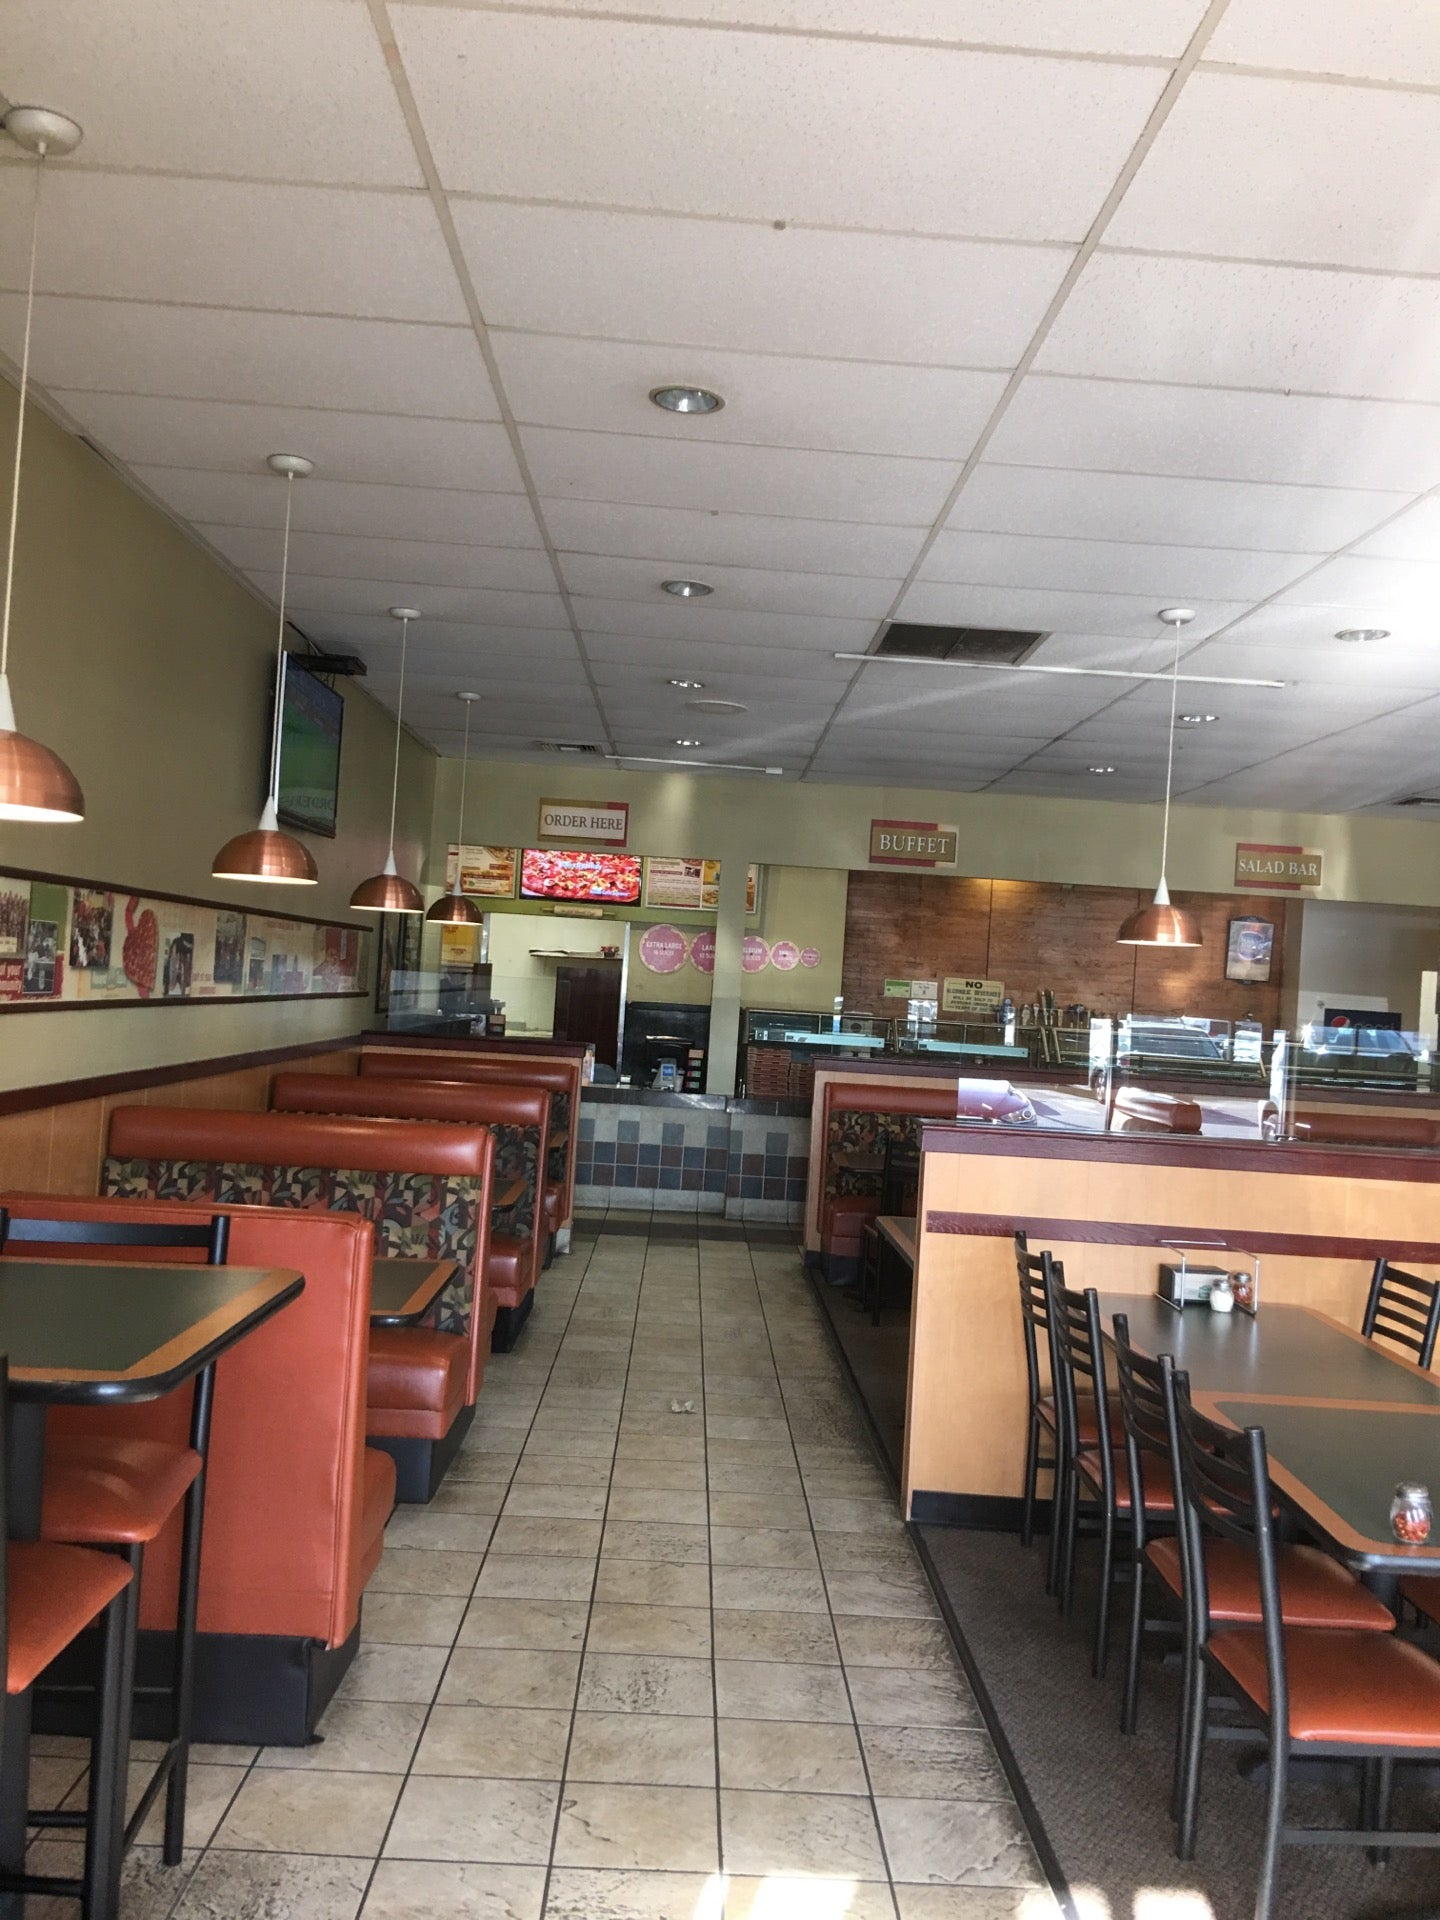 Round Table Pizza Burbank.Round Table Pizza In Burbank Parent Reviews On Winnie